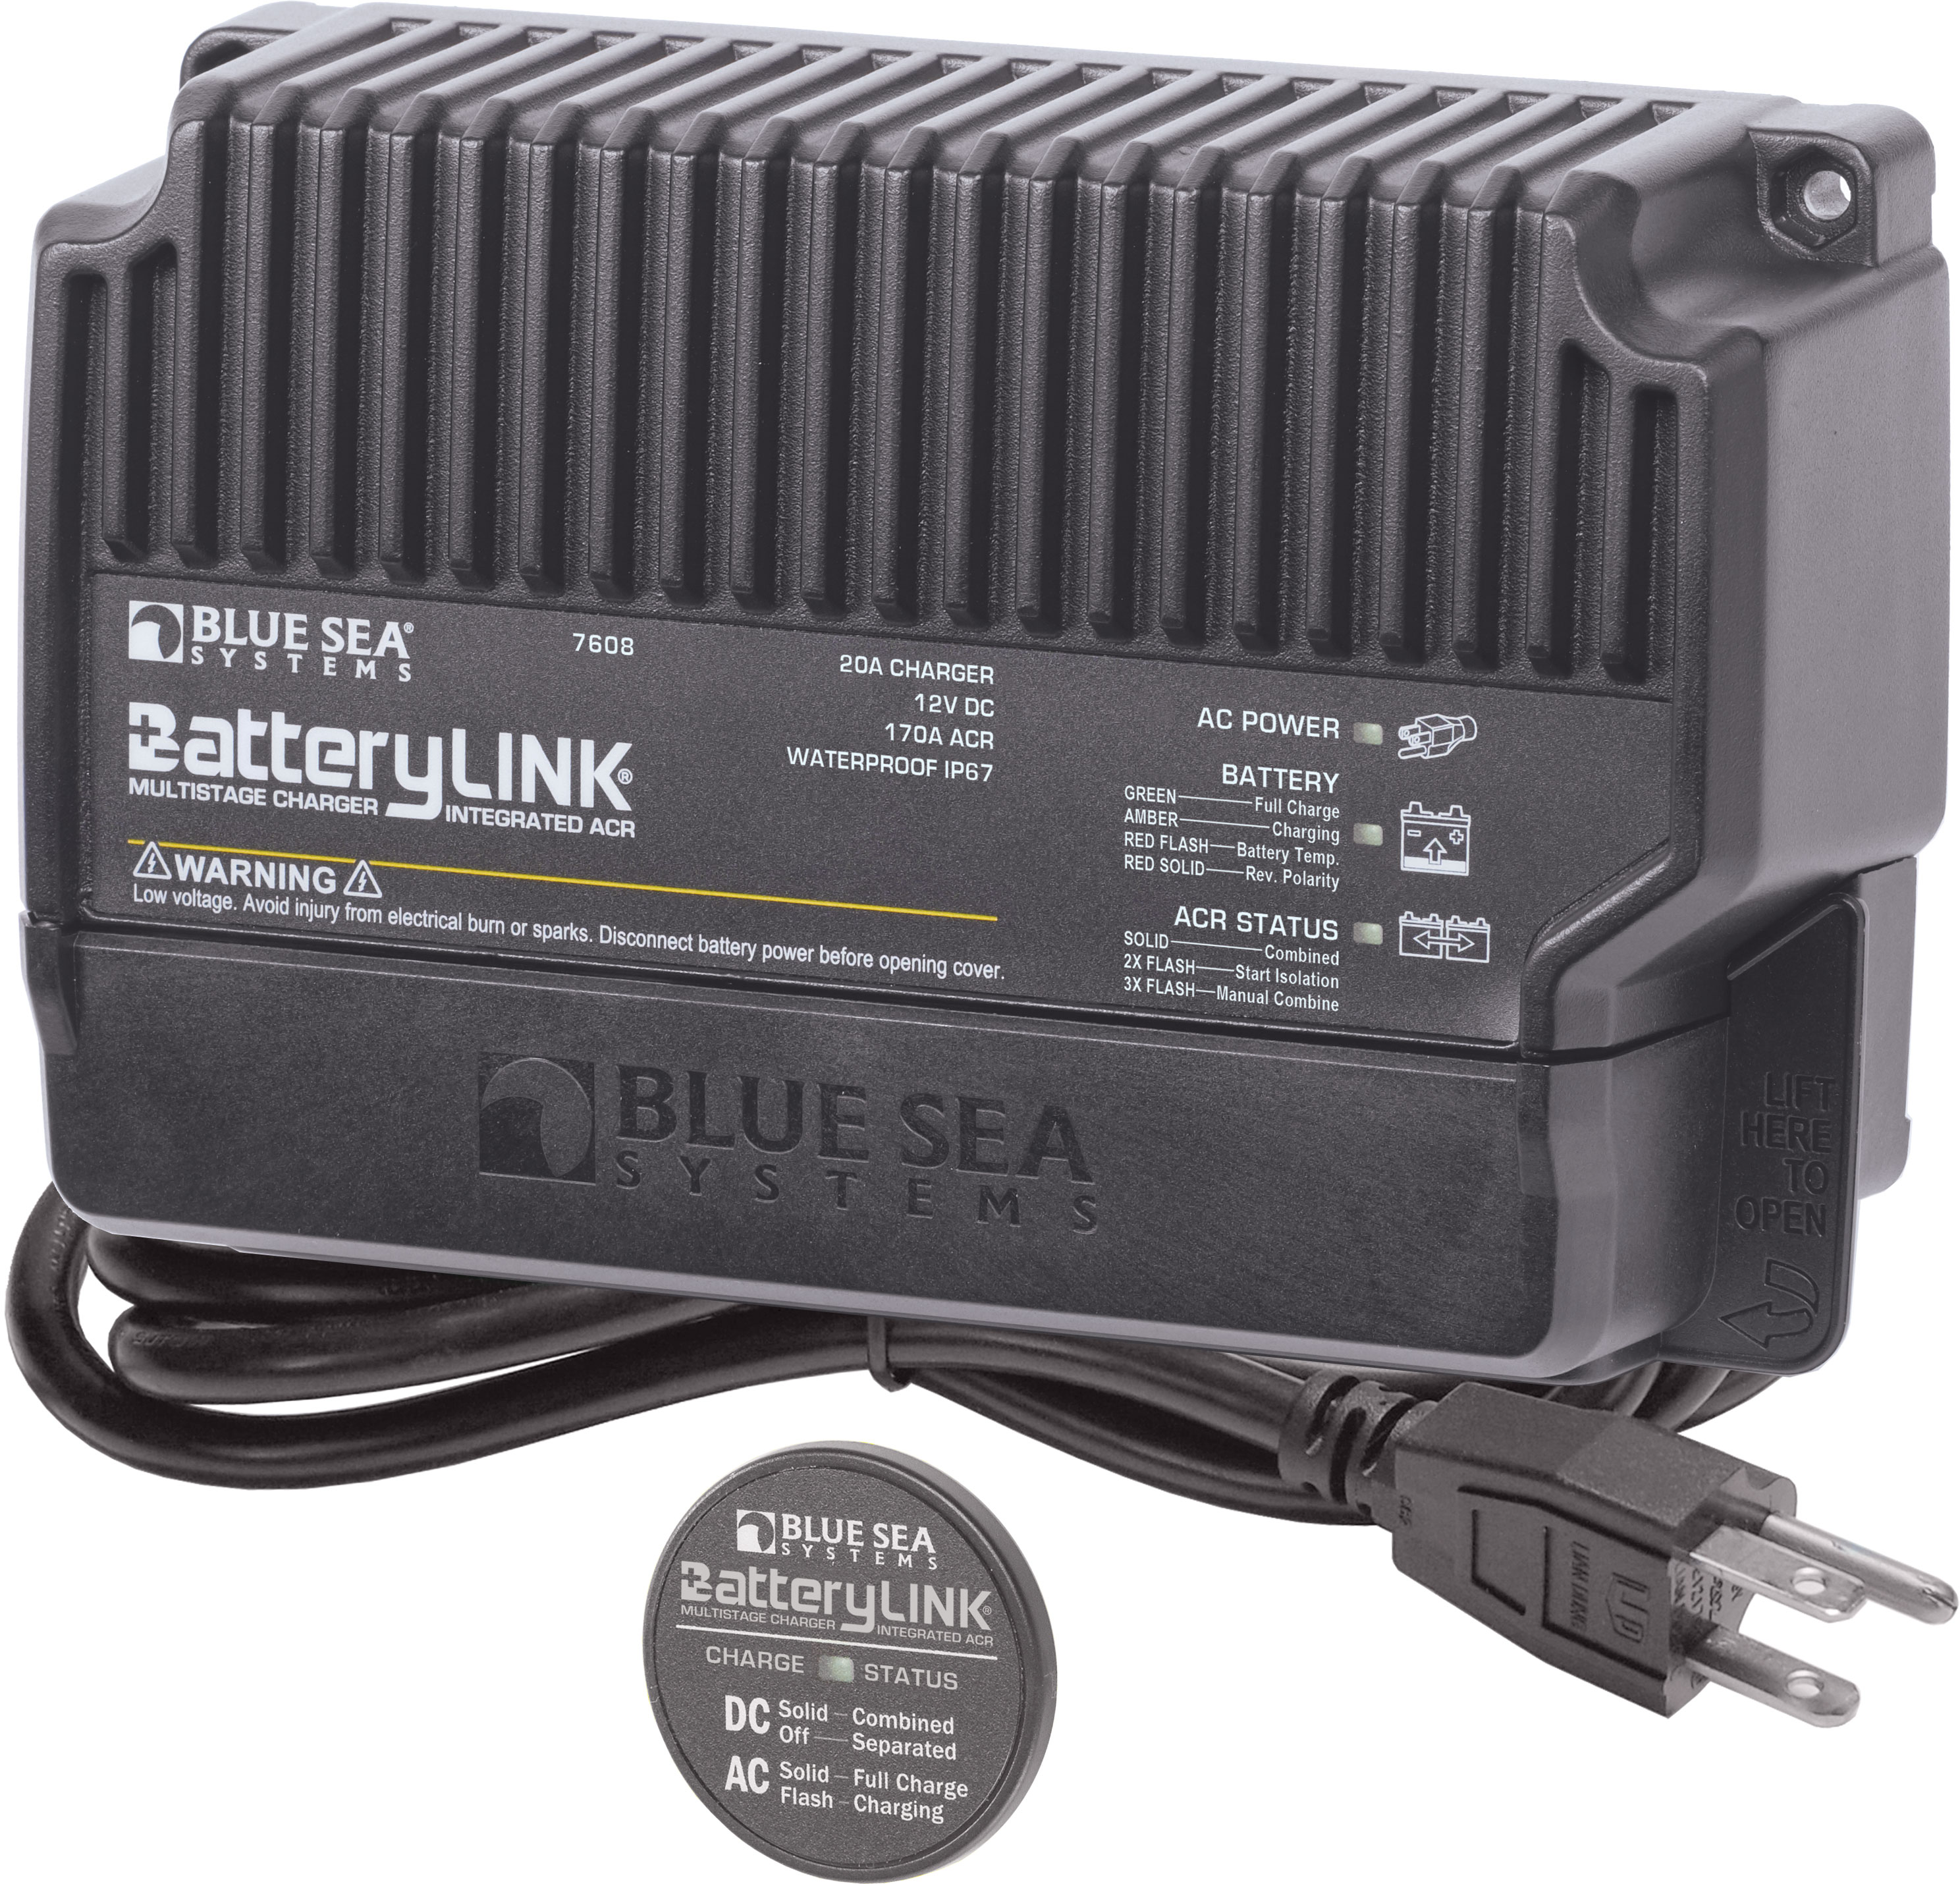 20a Batterylink Charger North America Blue Sea Systems Solenoid Wiring Diagram Product Image